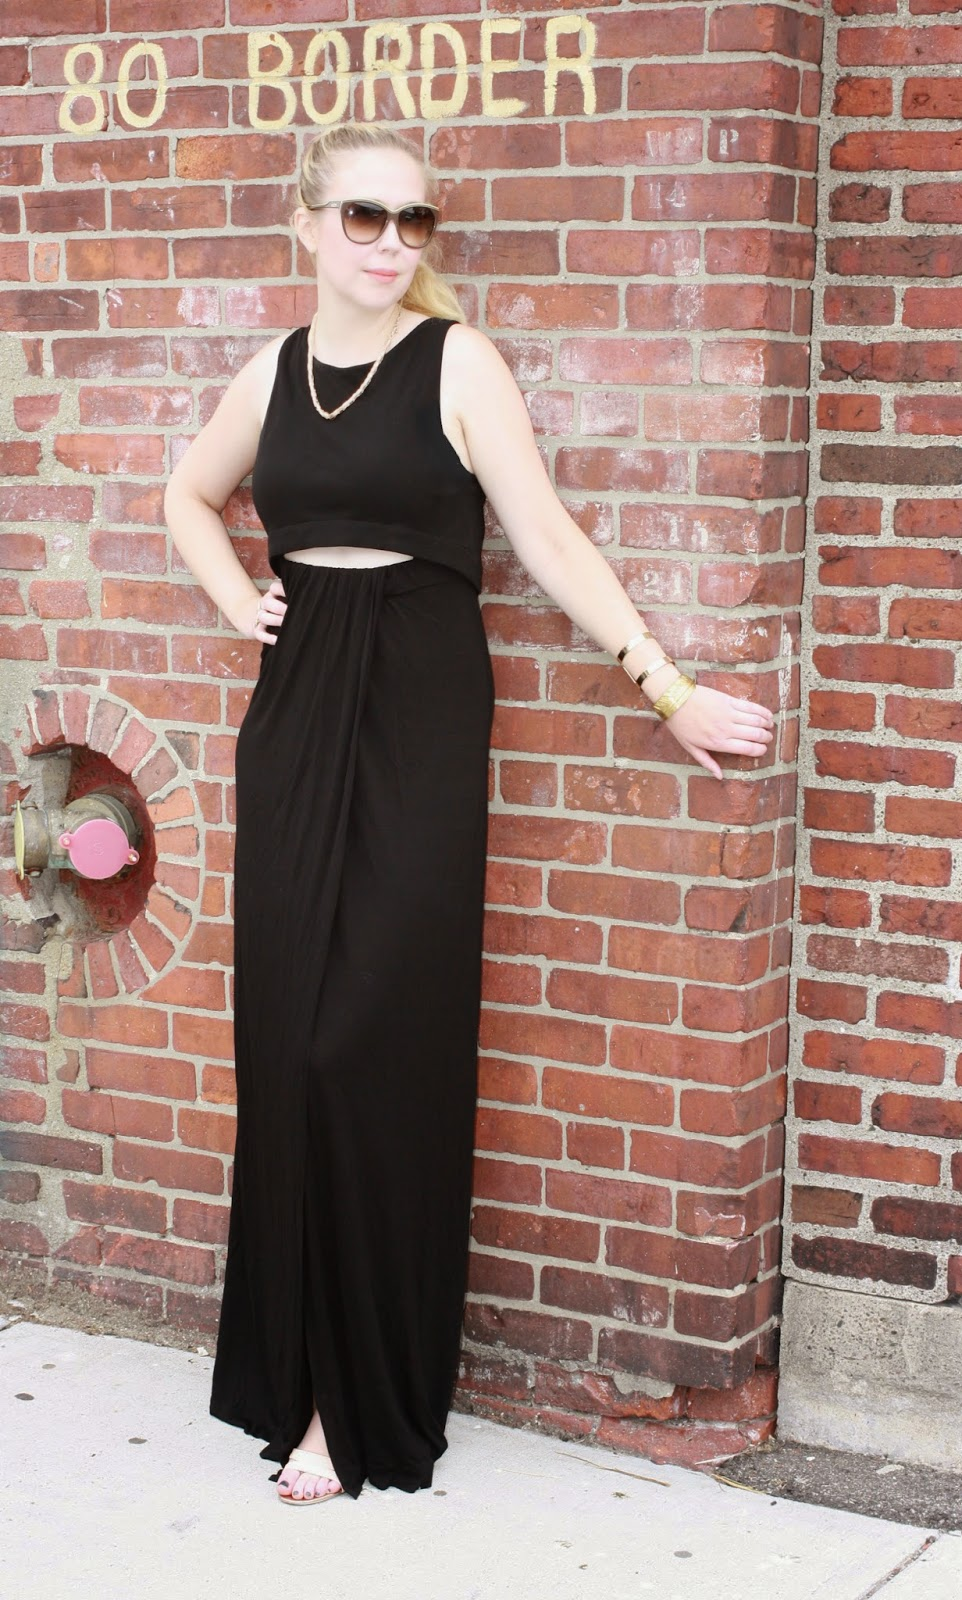 maxi dress shoes, women's maxi dress, How To Wear A Maxi Dress, How To Wear Gold, Outfits, Summer 2014, Boston Blogger, Boston Fashion Blog, Boston Fashion, Street Style, ALC, Intermix, Intermix Chestnut Hill, ALC Florentine Dress, How to Wear Gold